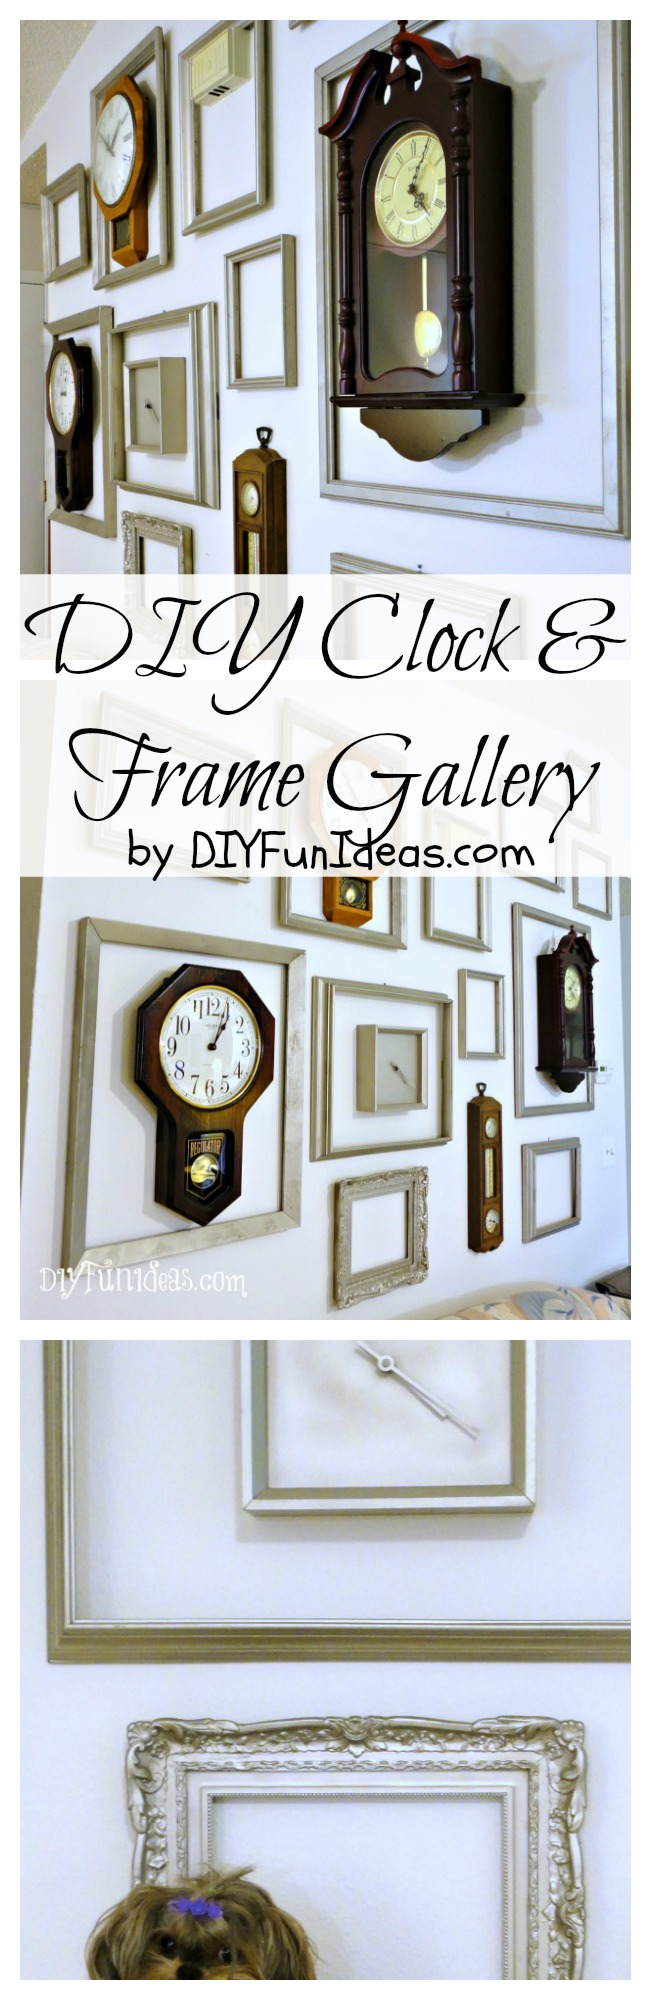 DIY CLOCK AND FRAME GALLERY - Do-It-Yourself Fun Ideas